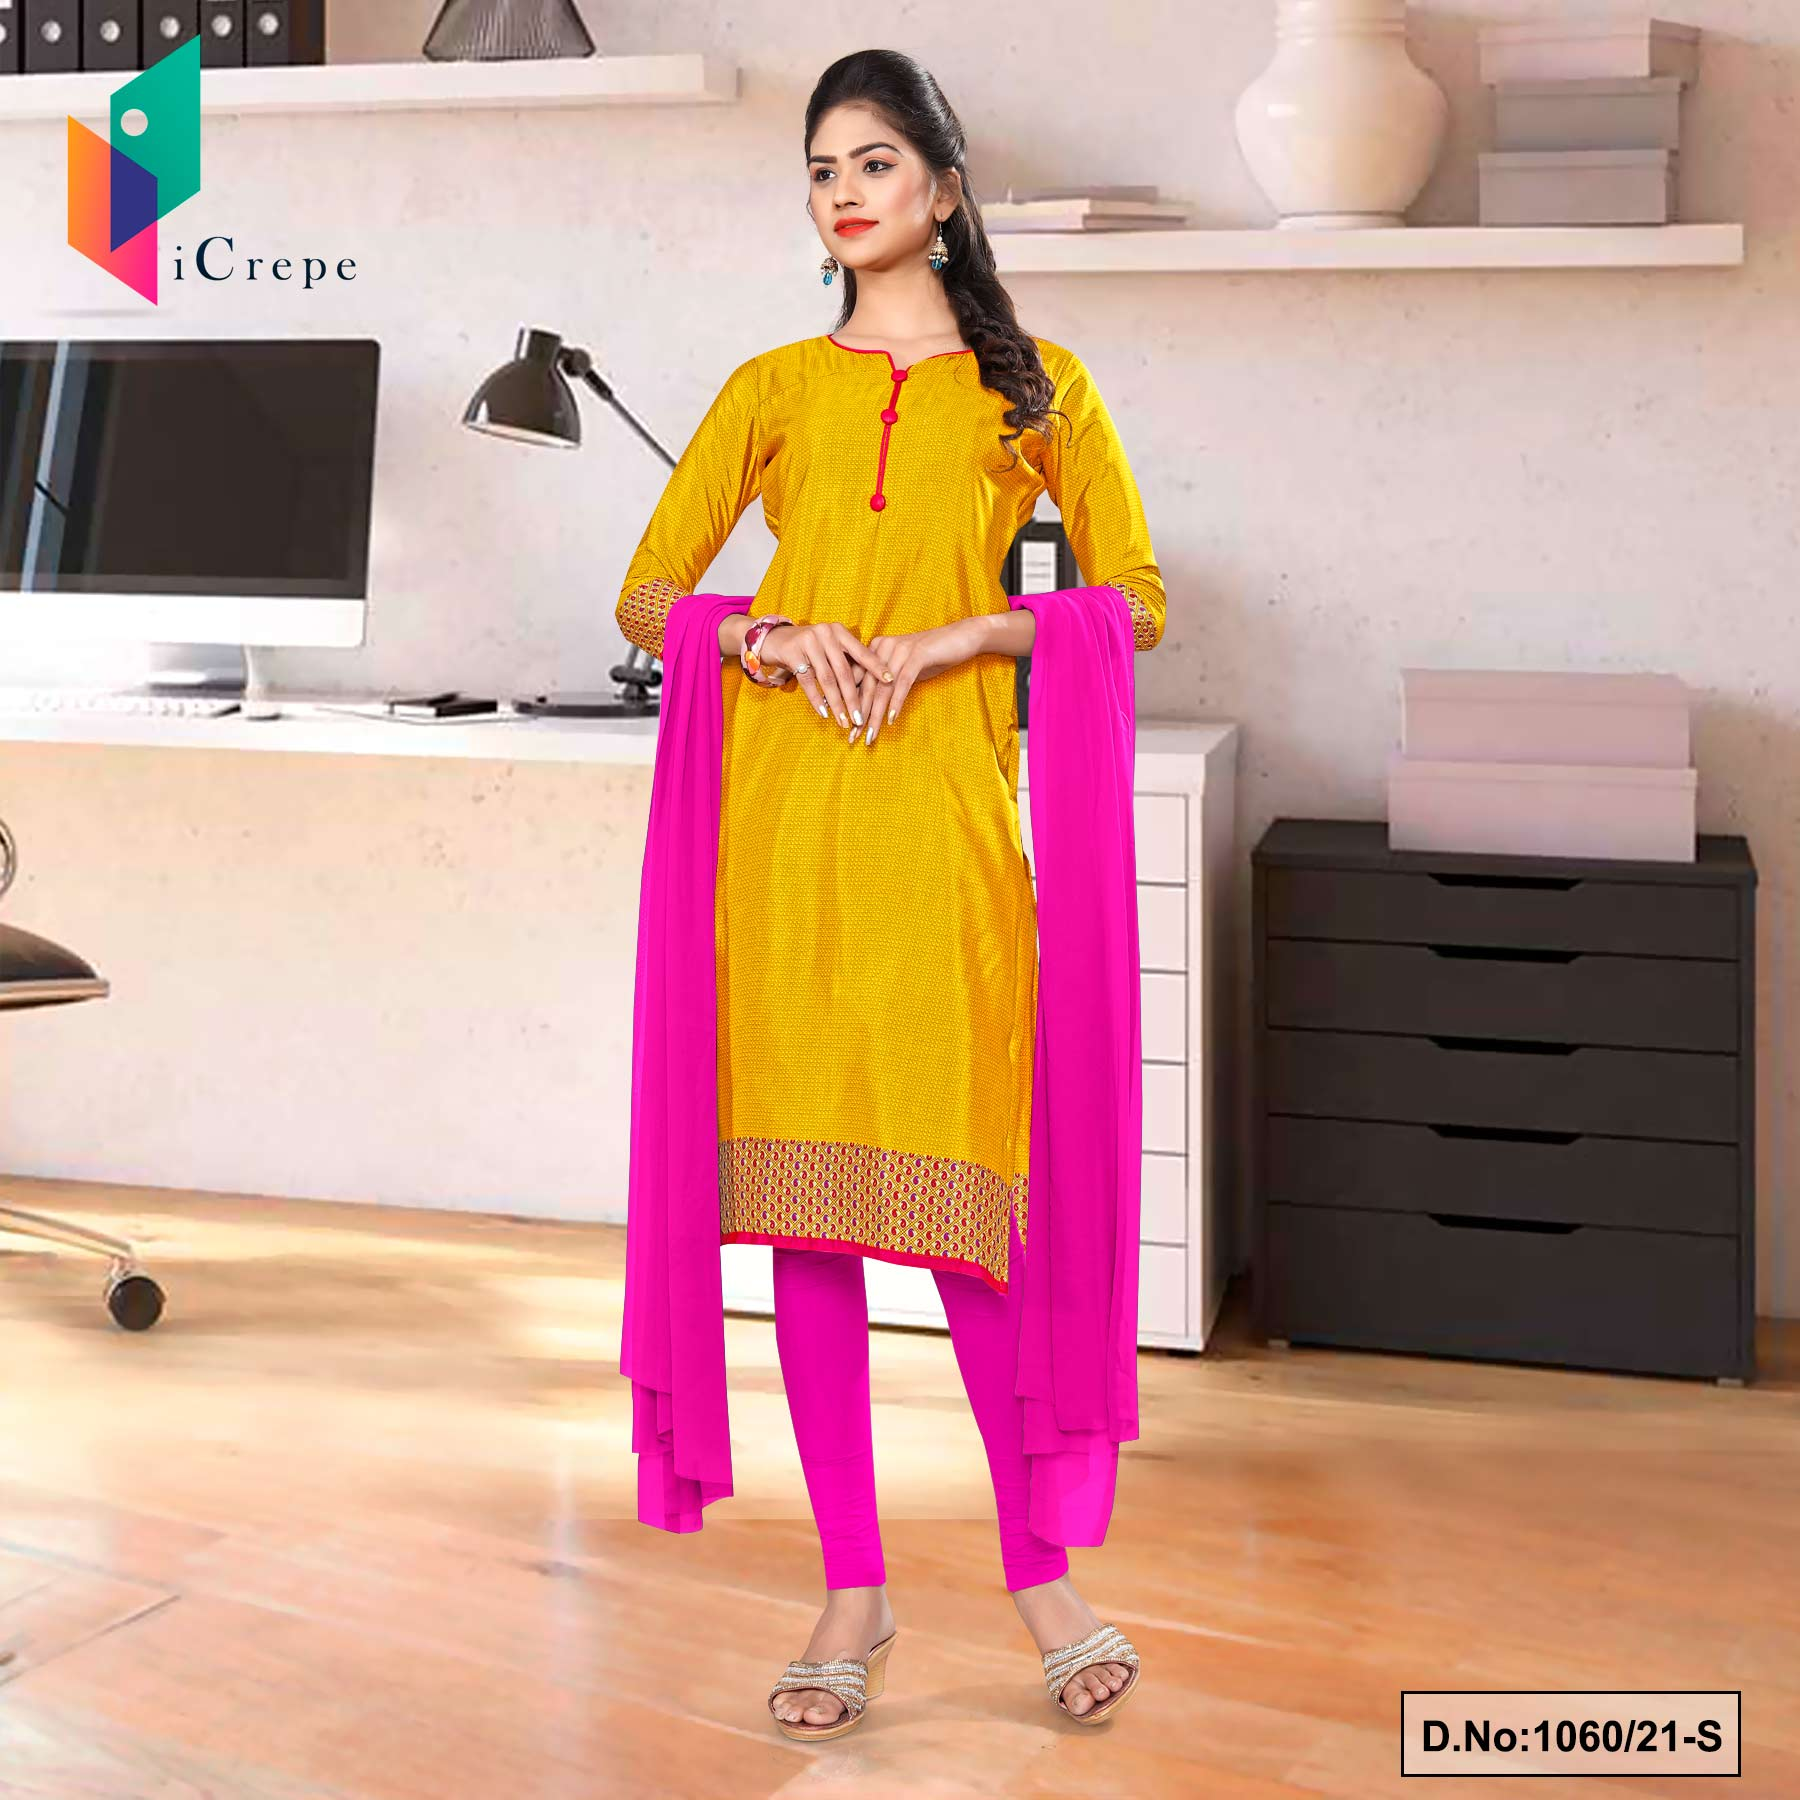 Yellow Rani Premium Italian Silk Crepe Uniform Salwar Kameez for Annual Function